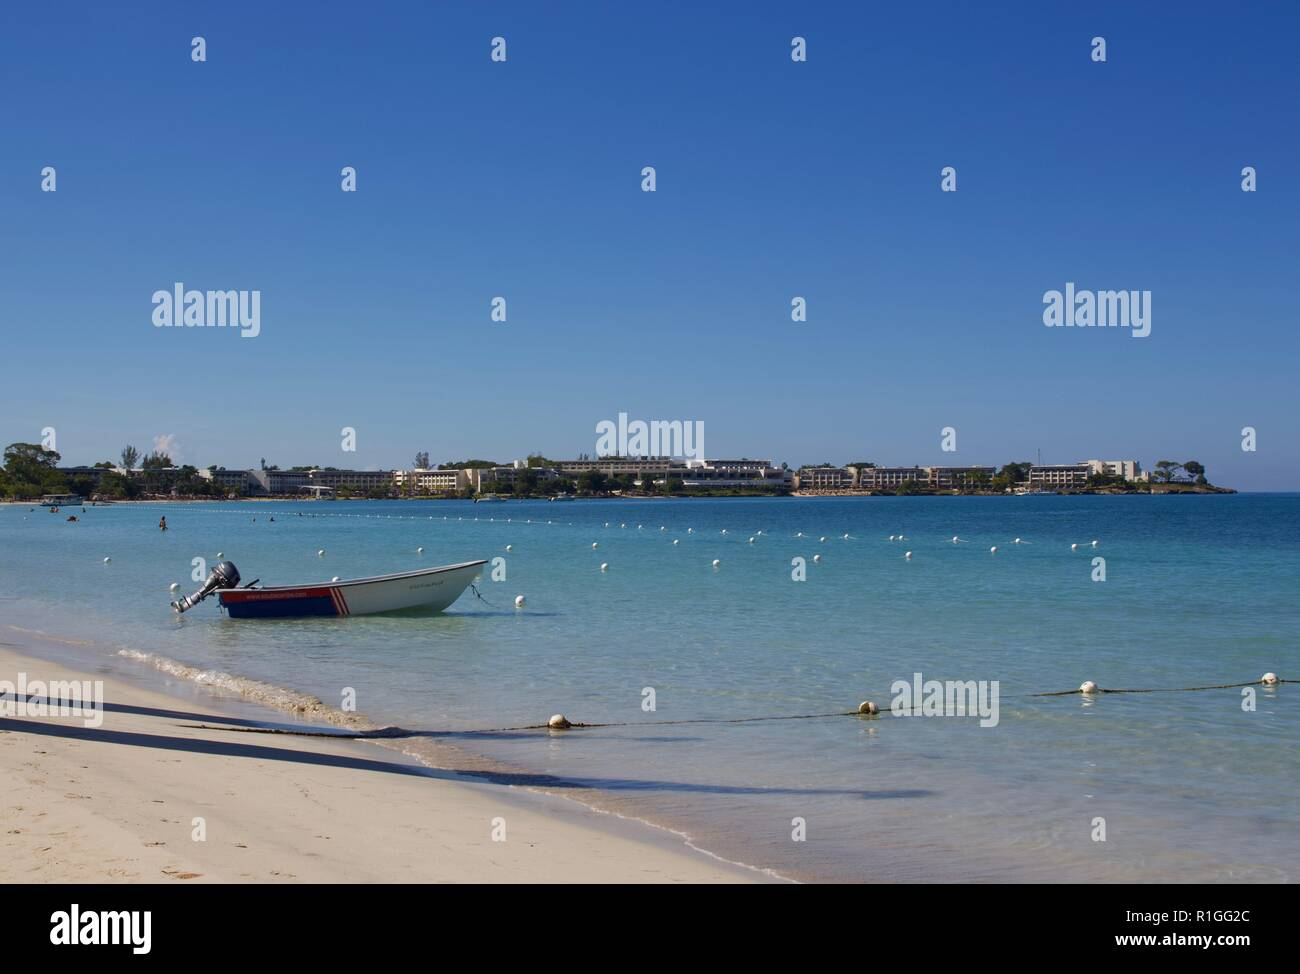 Landscape of the seven mile beach in Negril, Jamaica - Stock Image